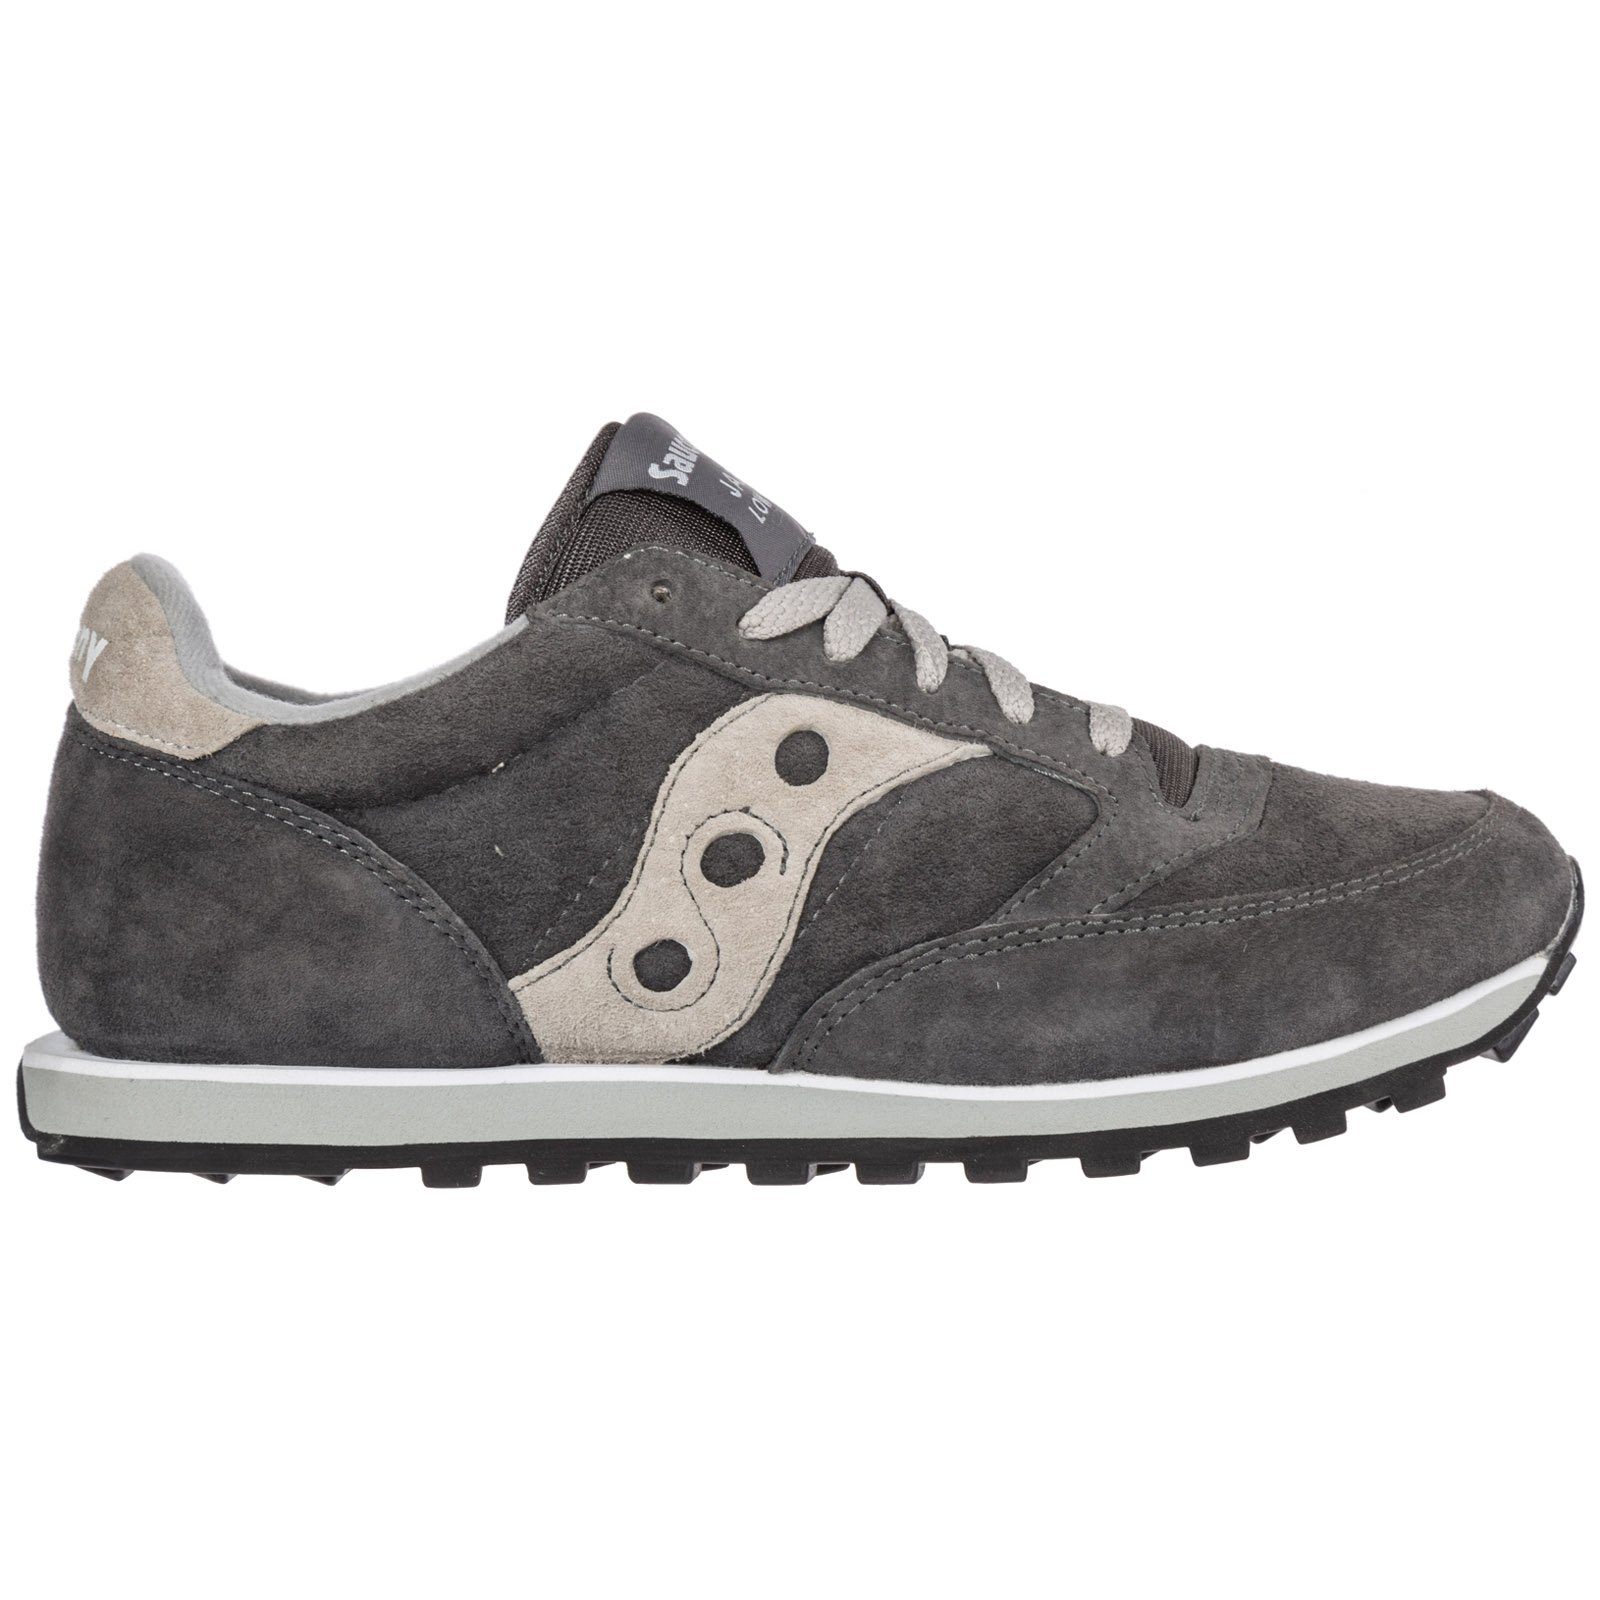 SAUCONY MEN'S SHOES SUEDE TRAINERS SNEAKERS NEW JAZZ O GREY